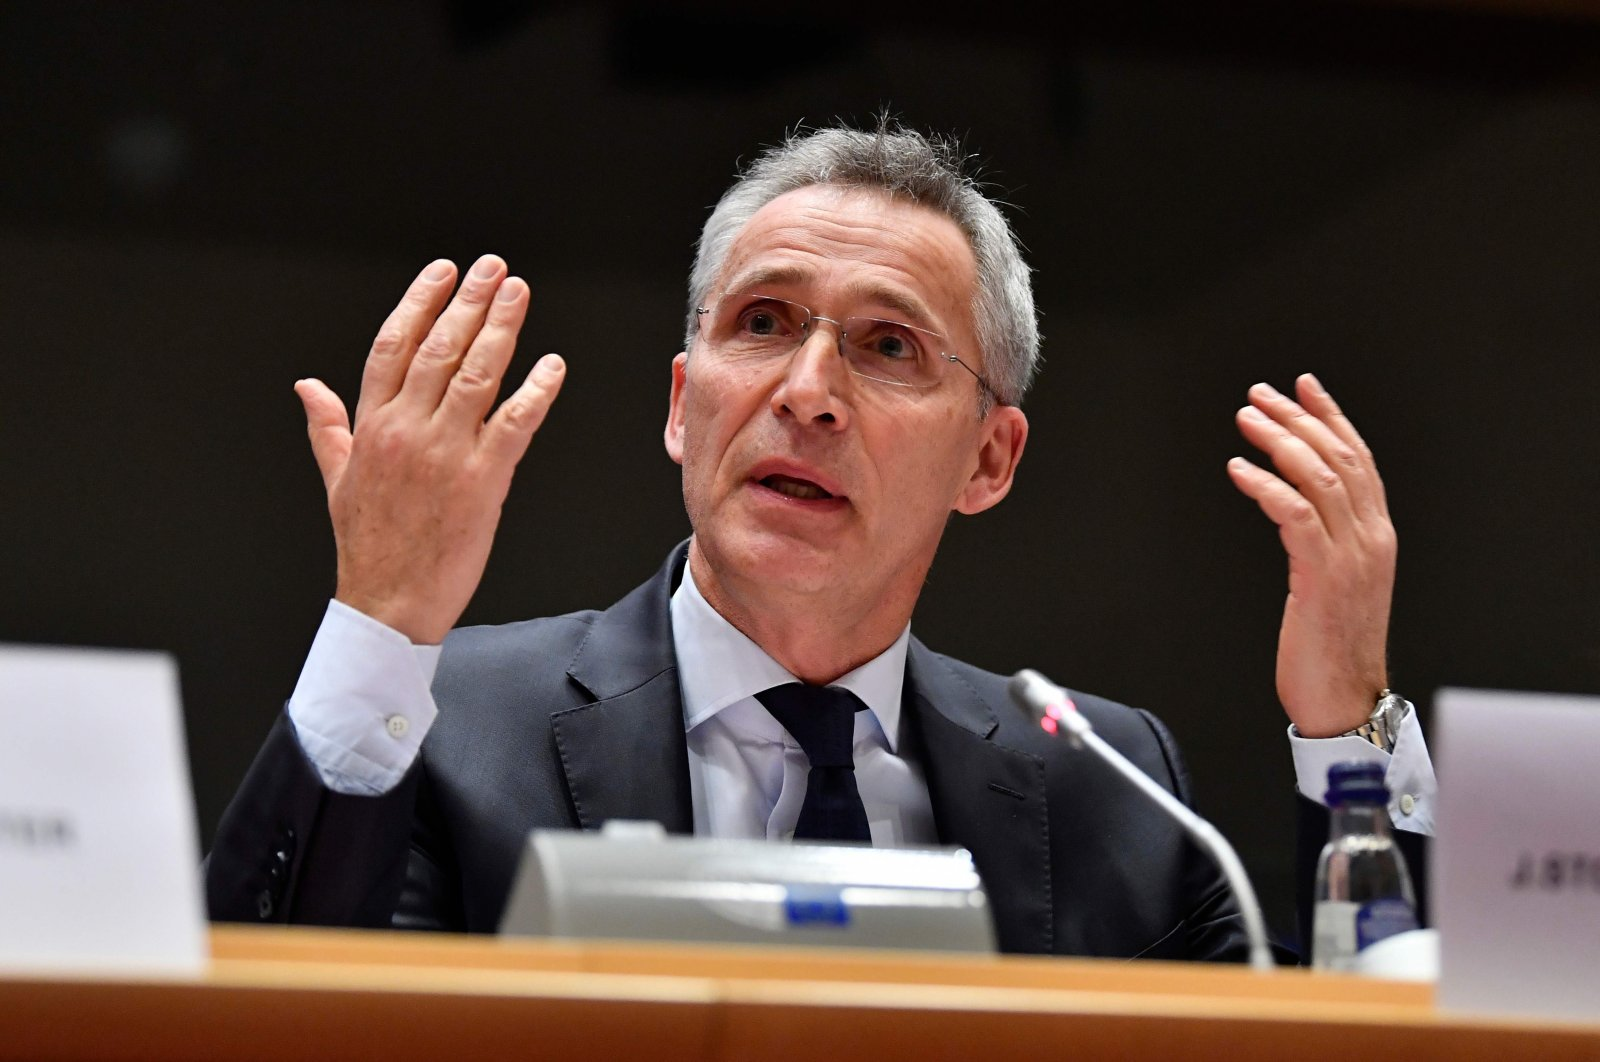 NATO Secretary-General Jens Stoltenberg addresses the European Parliament Committee on Foreign Affairs (AFET) and Subcommittee on Security and Defence (SEDE) at the EU headquarters in Brussels, Jan. 21, 2020. (AFP Photo)